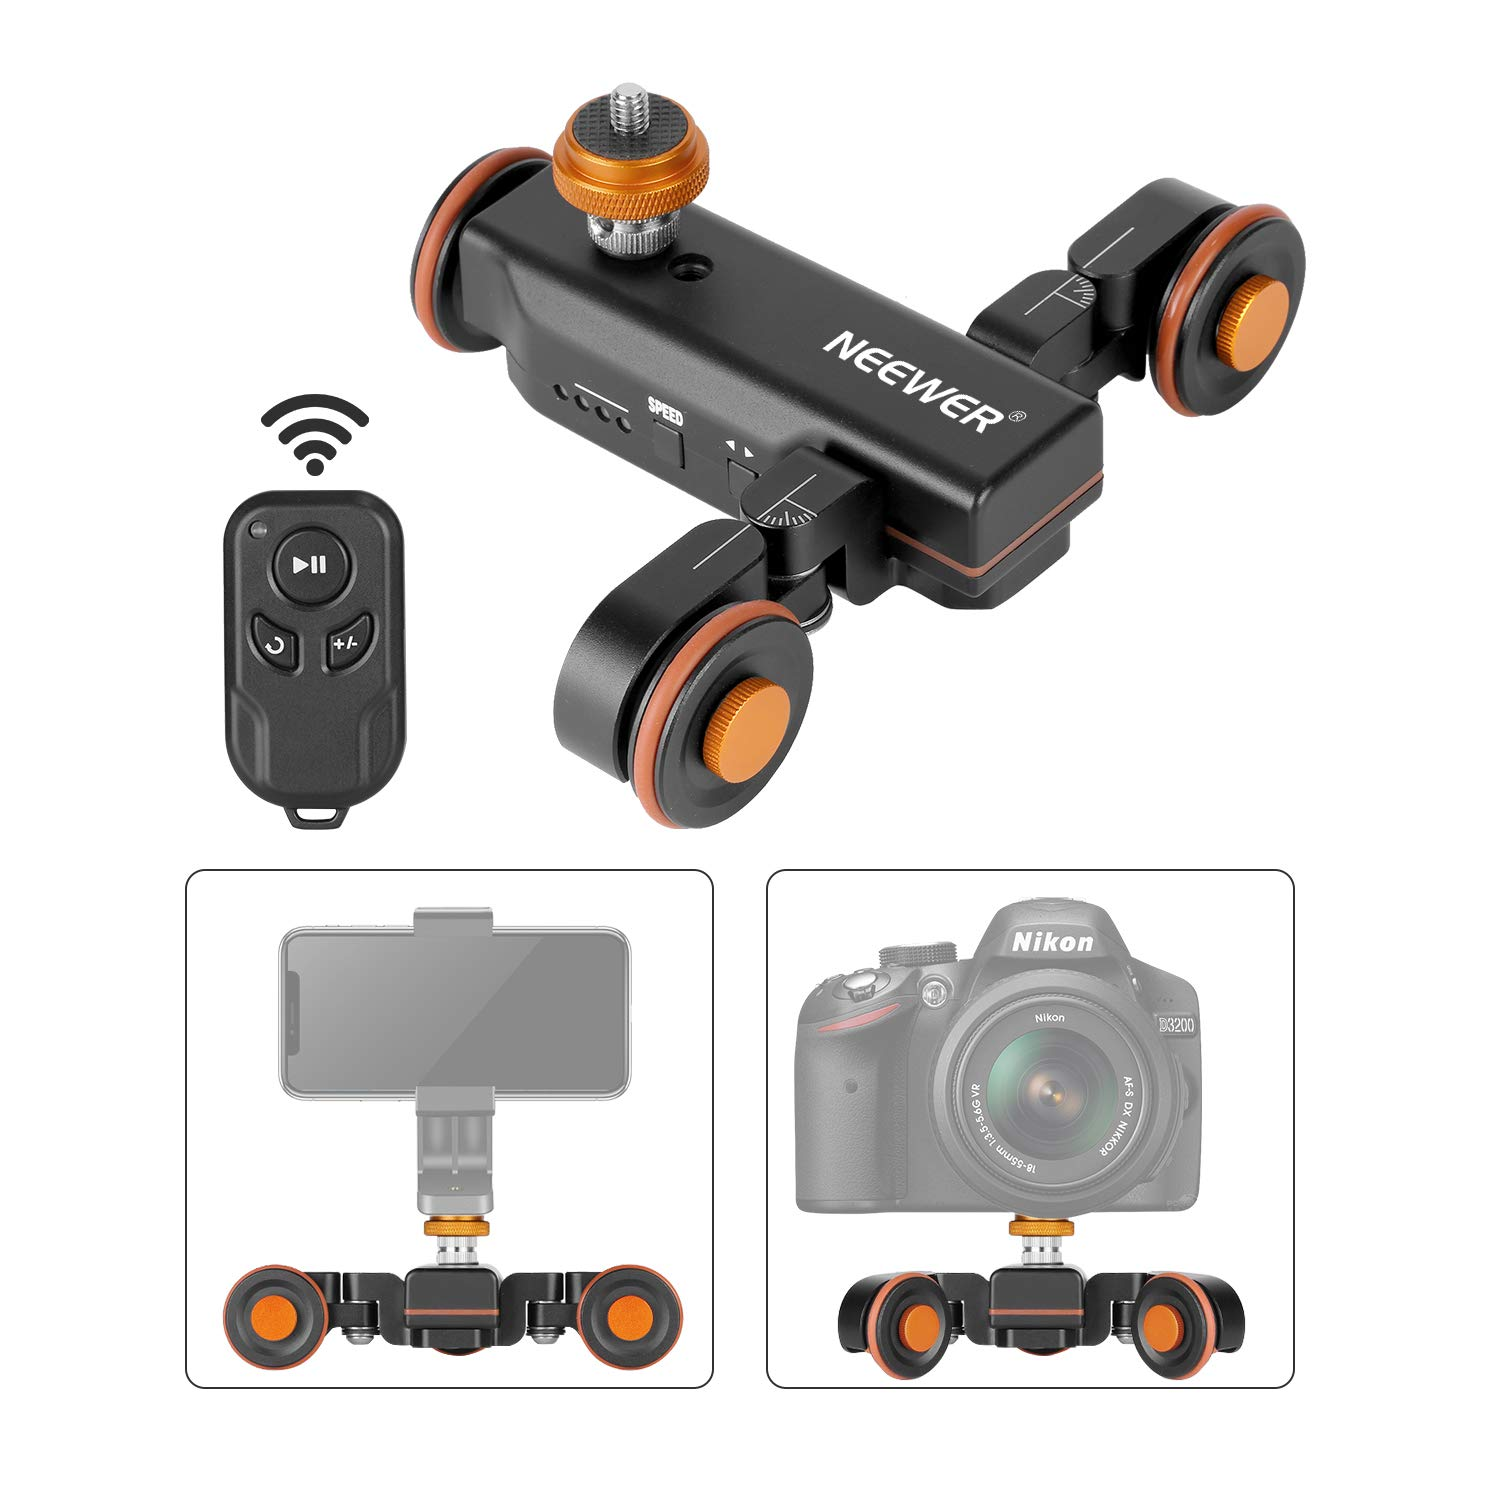 Neewer 3-Wheels Wirelesss Camera Video Auto Dolly,Motorized Electric Track Rail Slider Dolly Car with Remote Control,3 Speed Adjustable for DSLR Camera Camcorder Gopro iPhone and Samsung Phones by Neewer